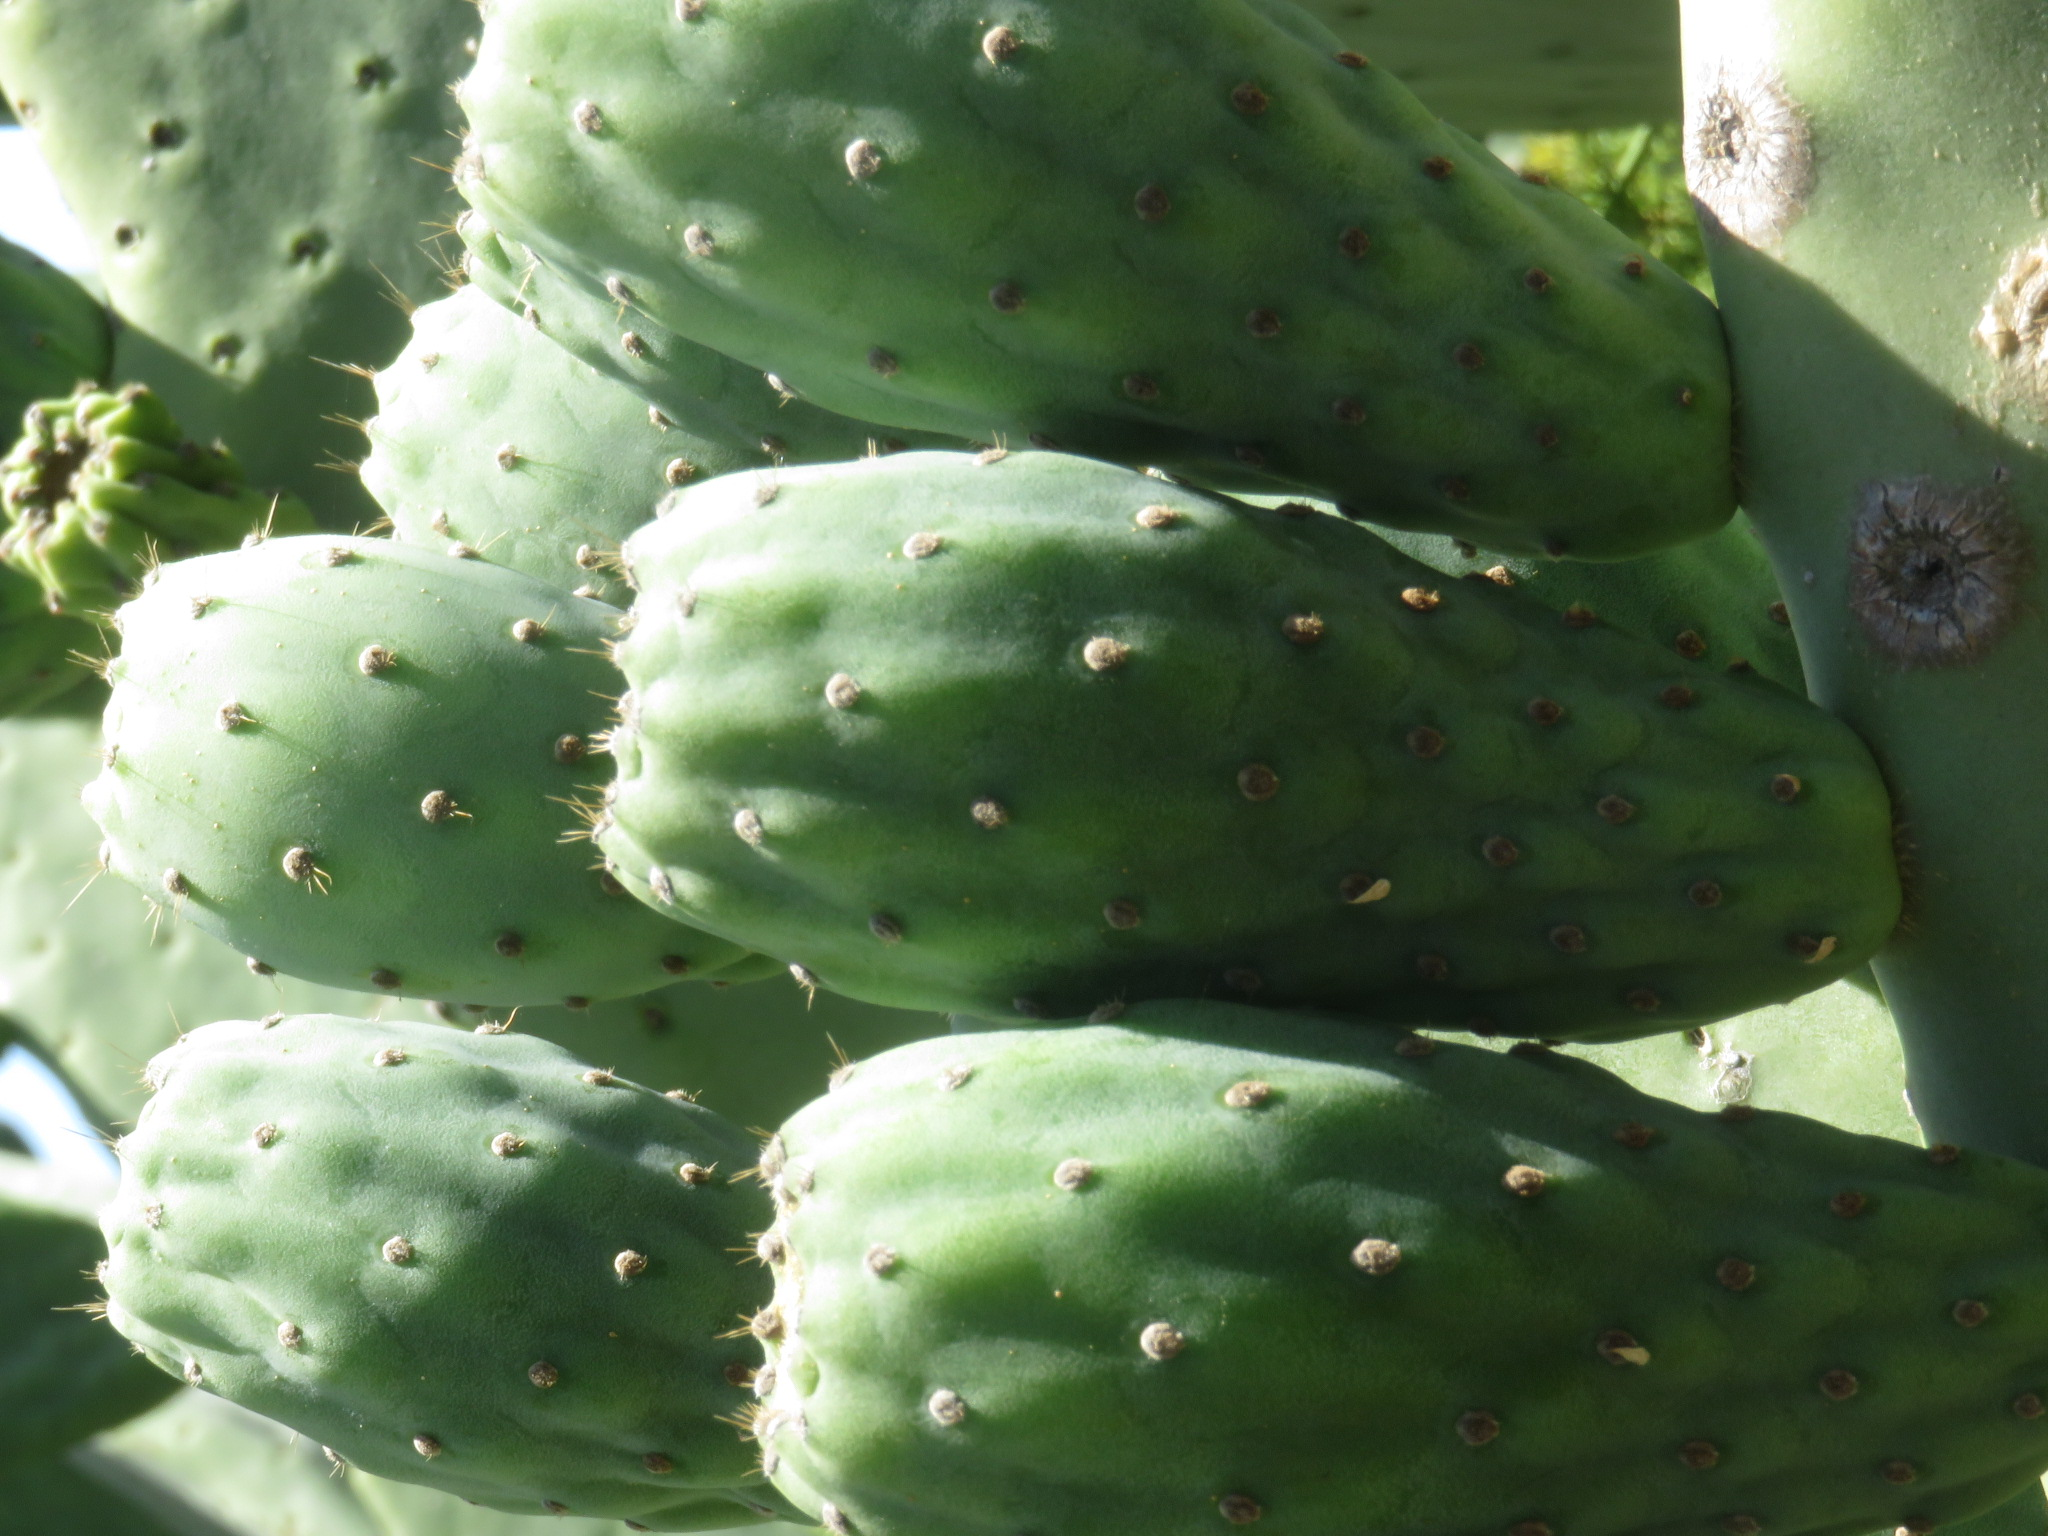 Fruit of the nopal cactus. The pads can also be de-thorned and eaten as a vegetable.